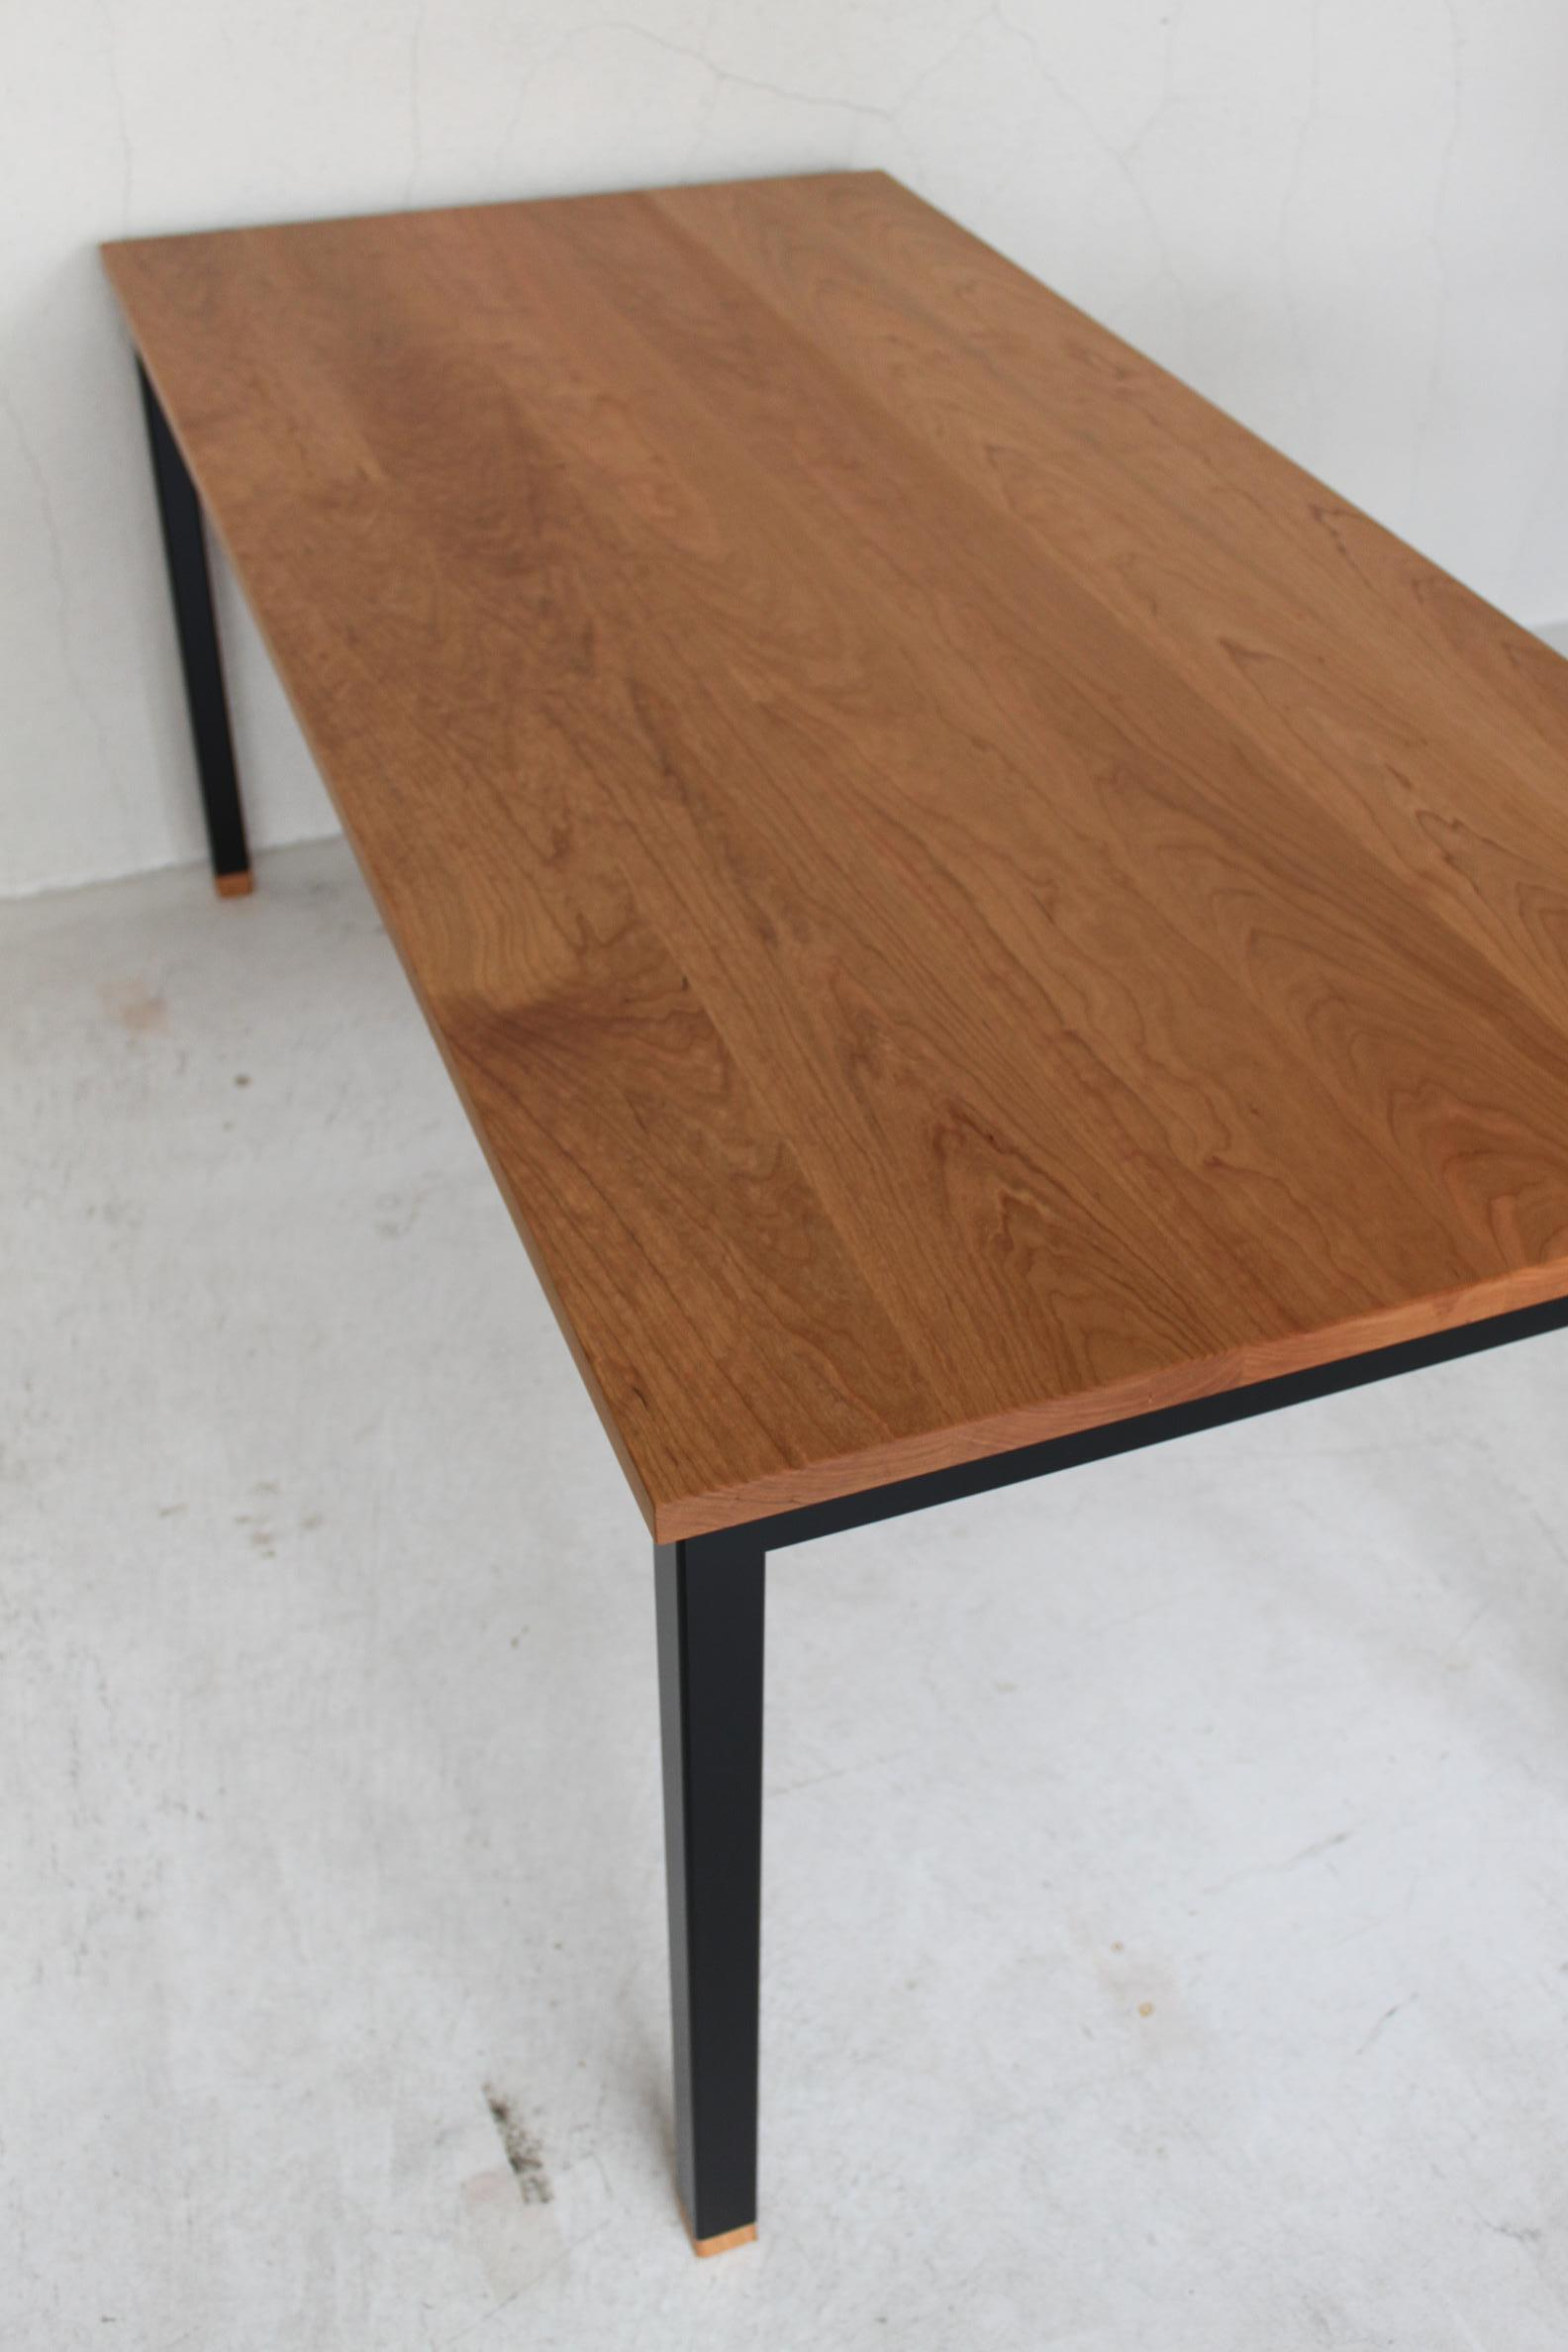 WB DINING TABLE_c0146581_14573958.jpg